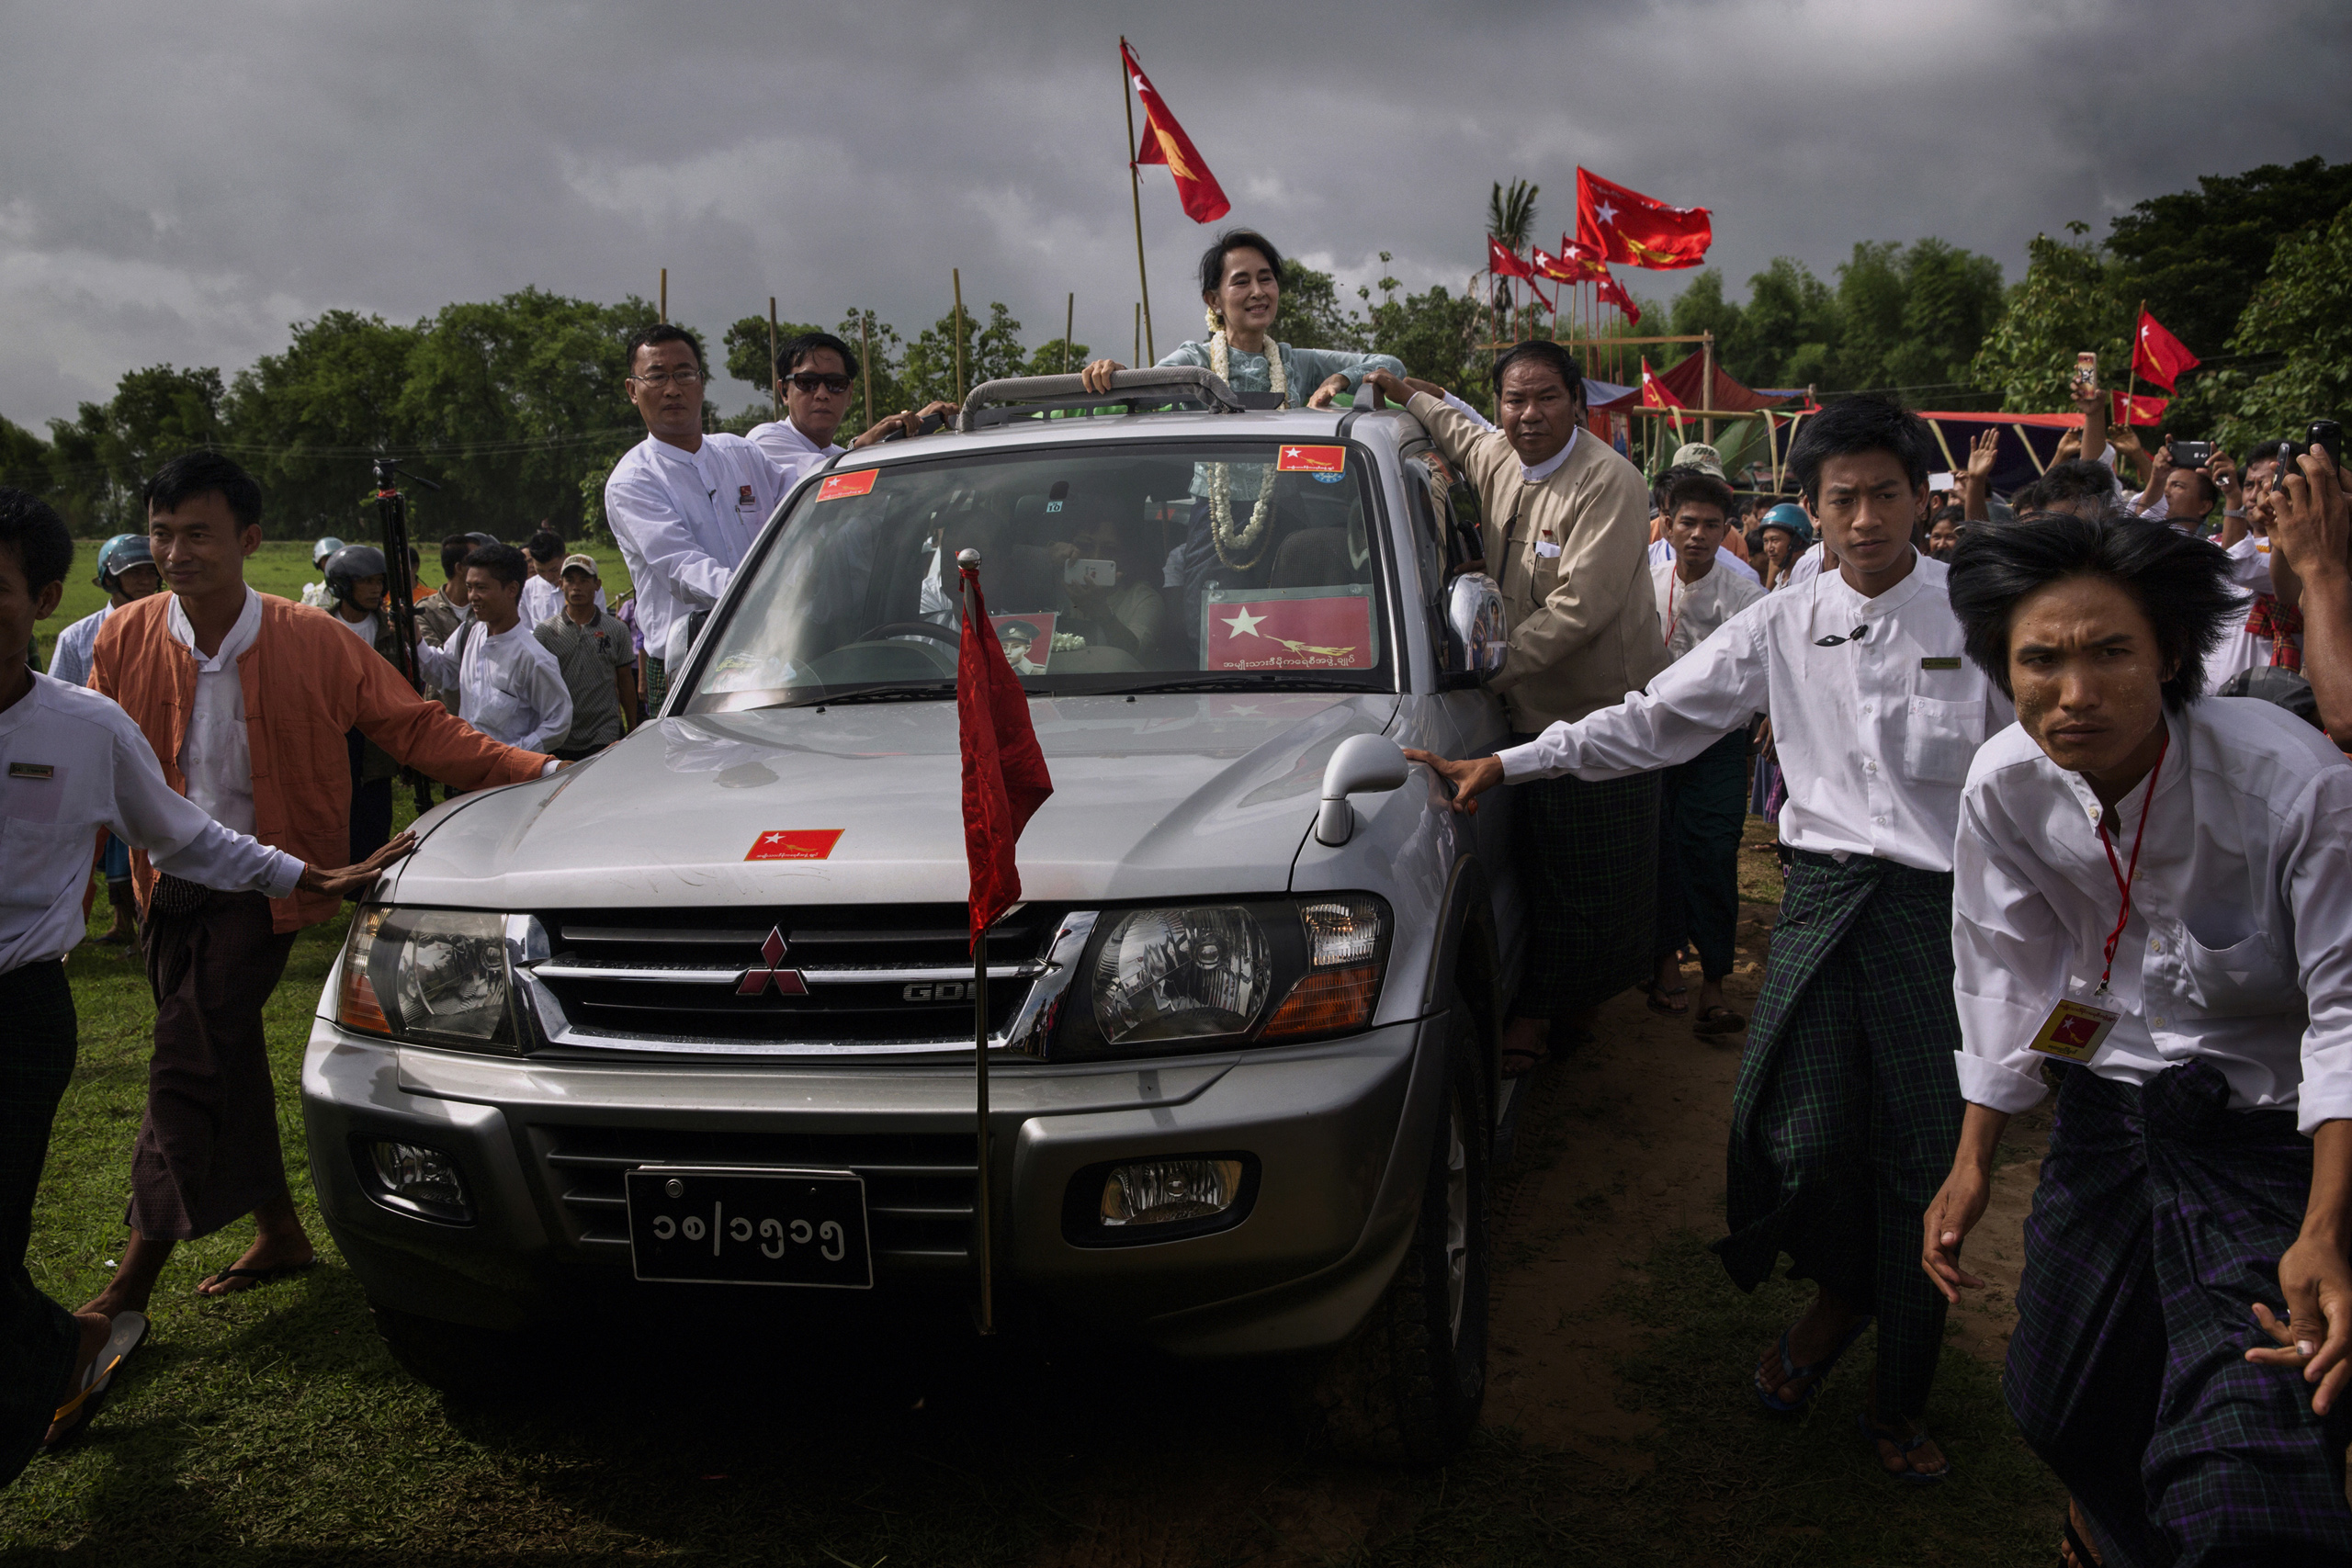 Aung San Suu Kyi leaves after speaking at a rally  in Yay Tar Shay Township, Bago Region, Burma,  June 21, 2014.